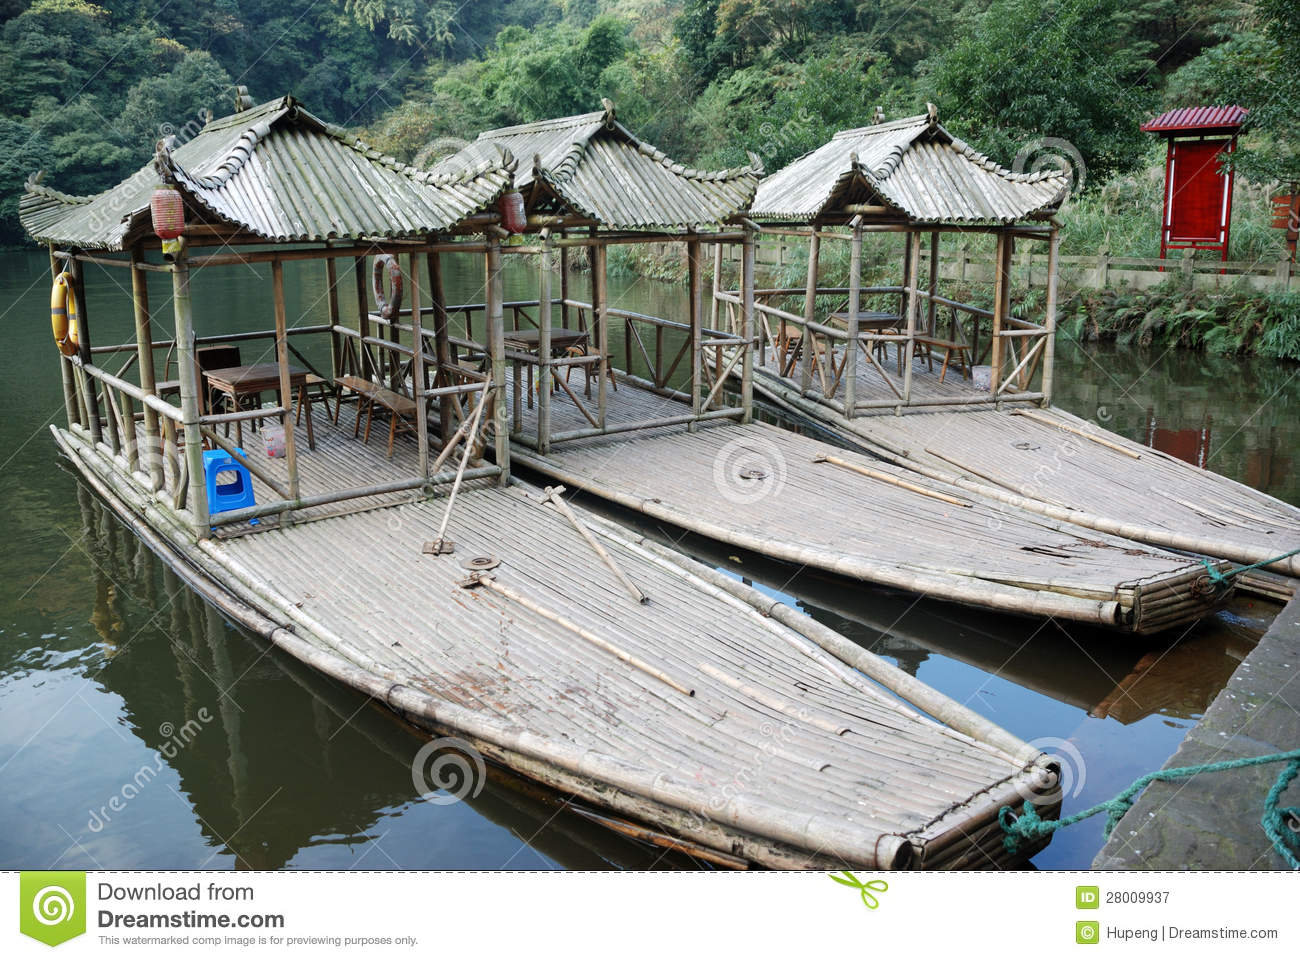 Bamboo boats stock image. Image of culture, garden, beech - 28009937